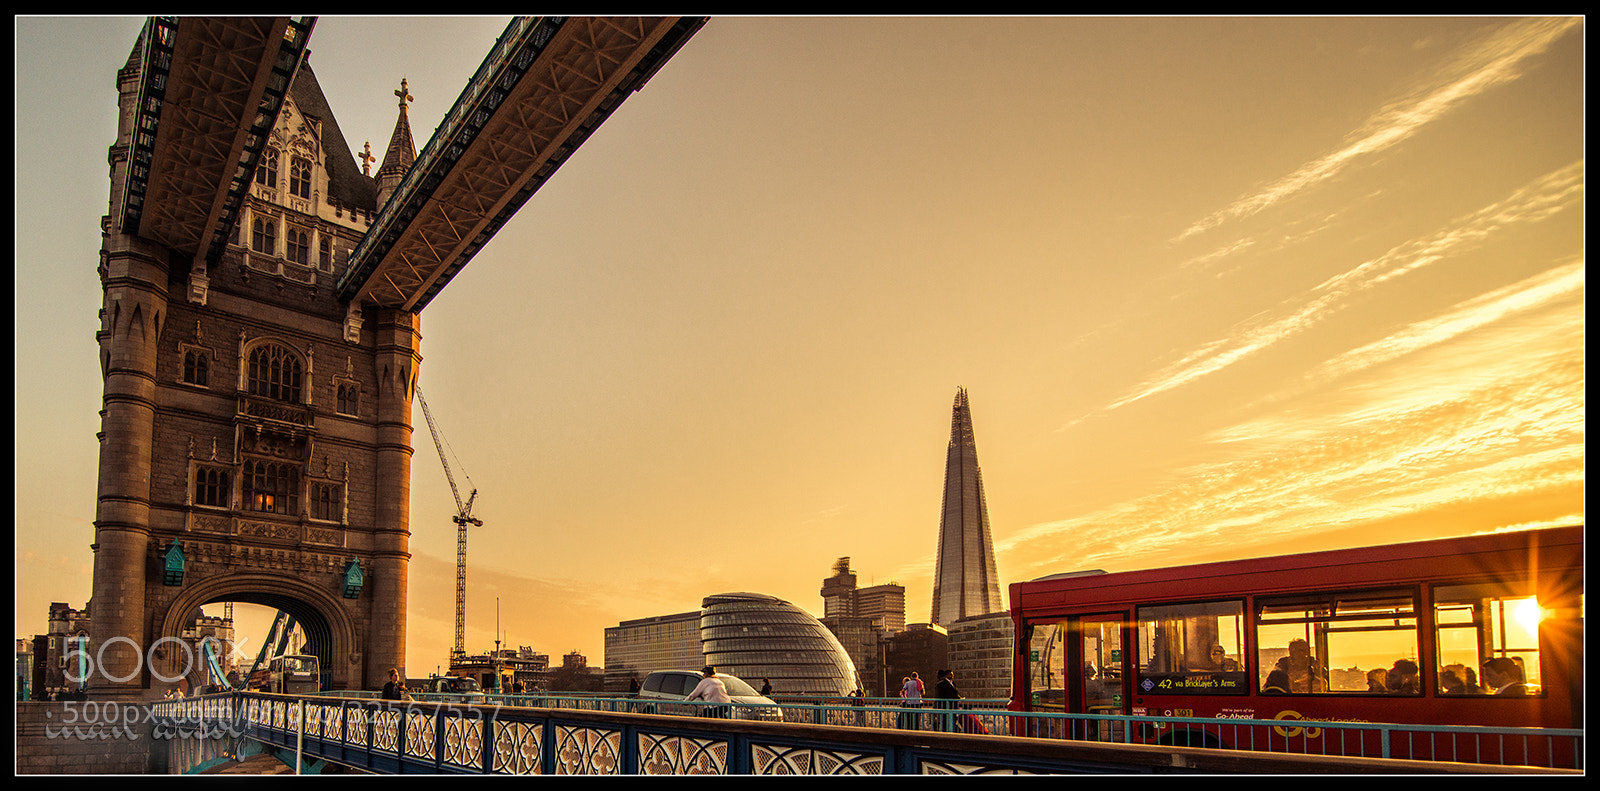 Photograph Tower Bridge & Bus 42 by Inan Aksoy on 500px